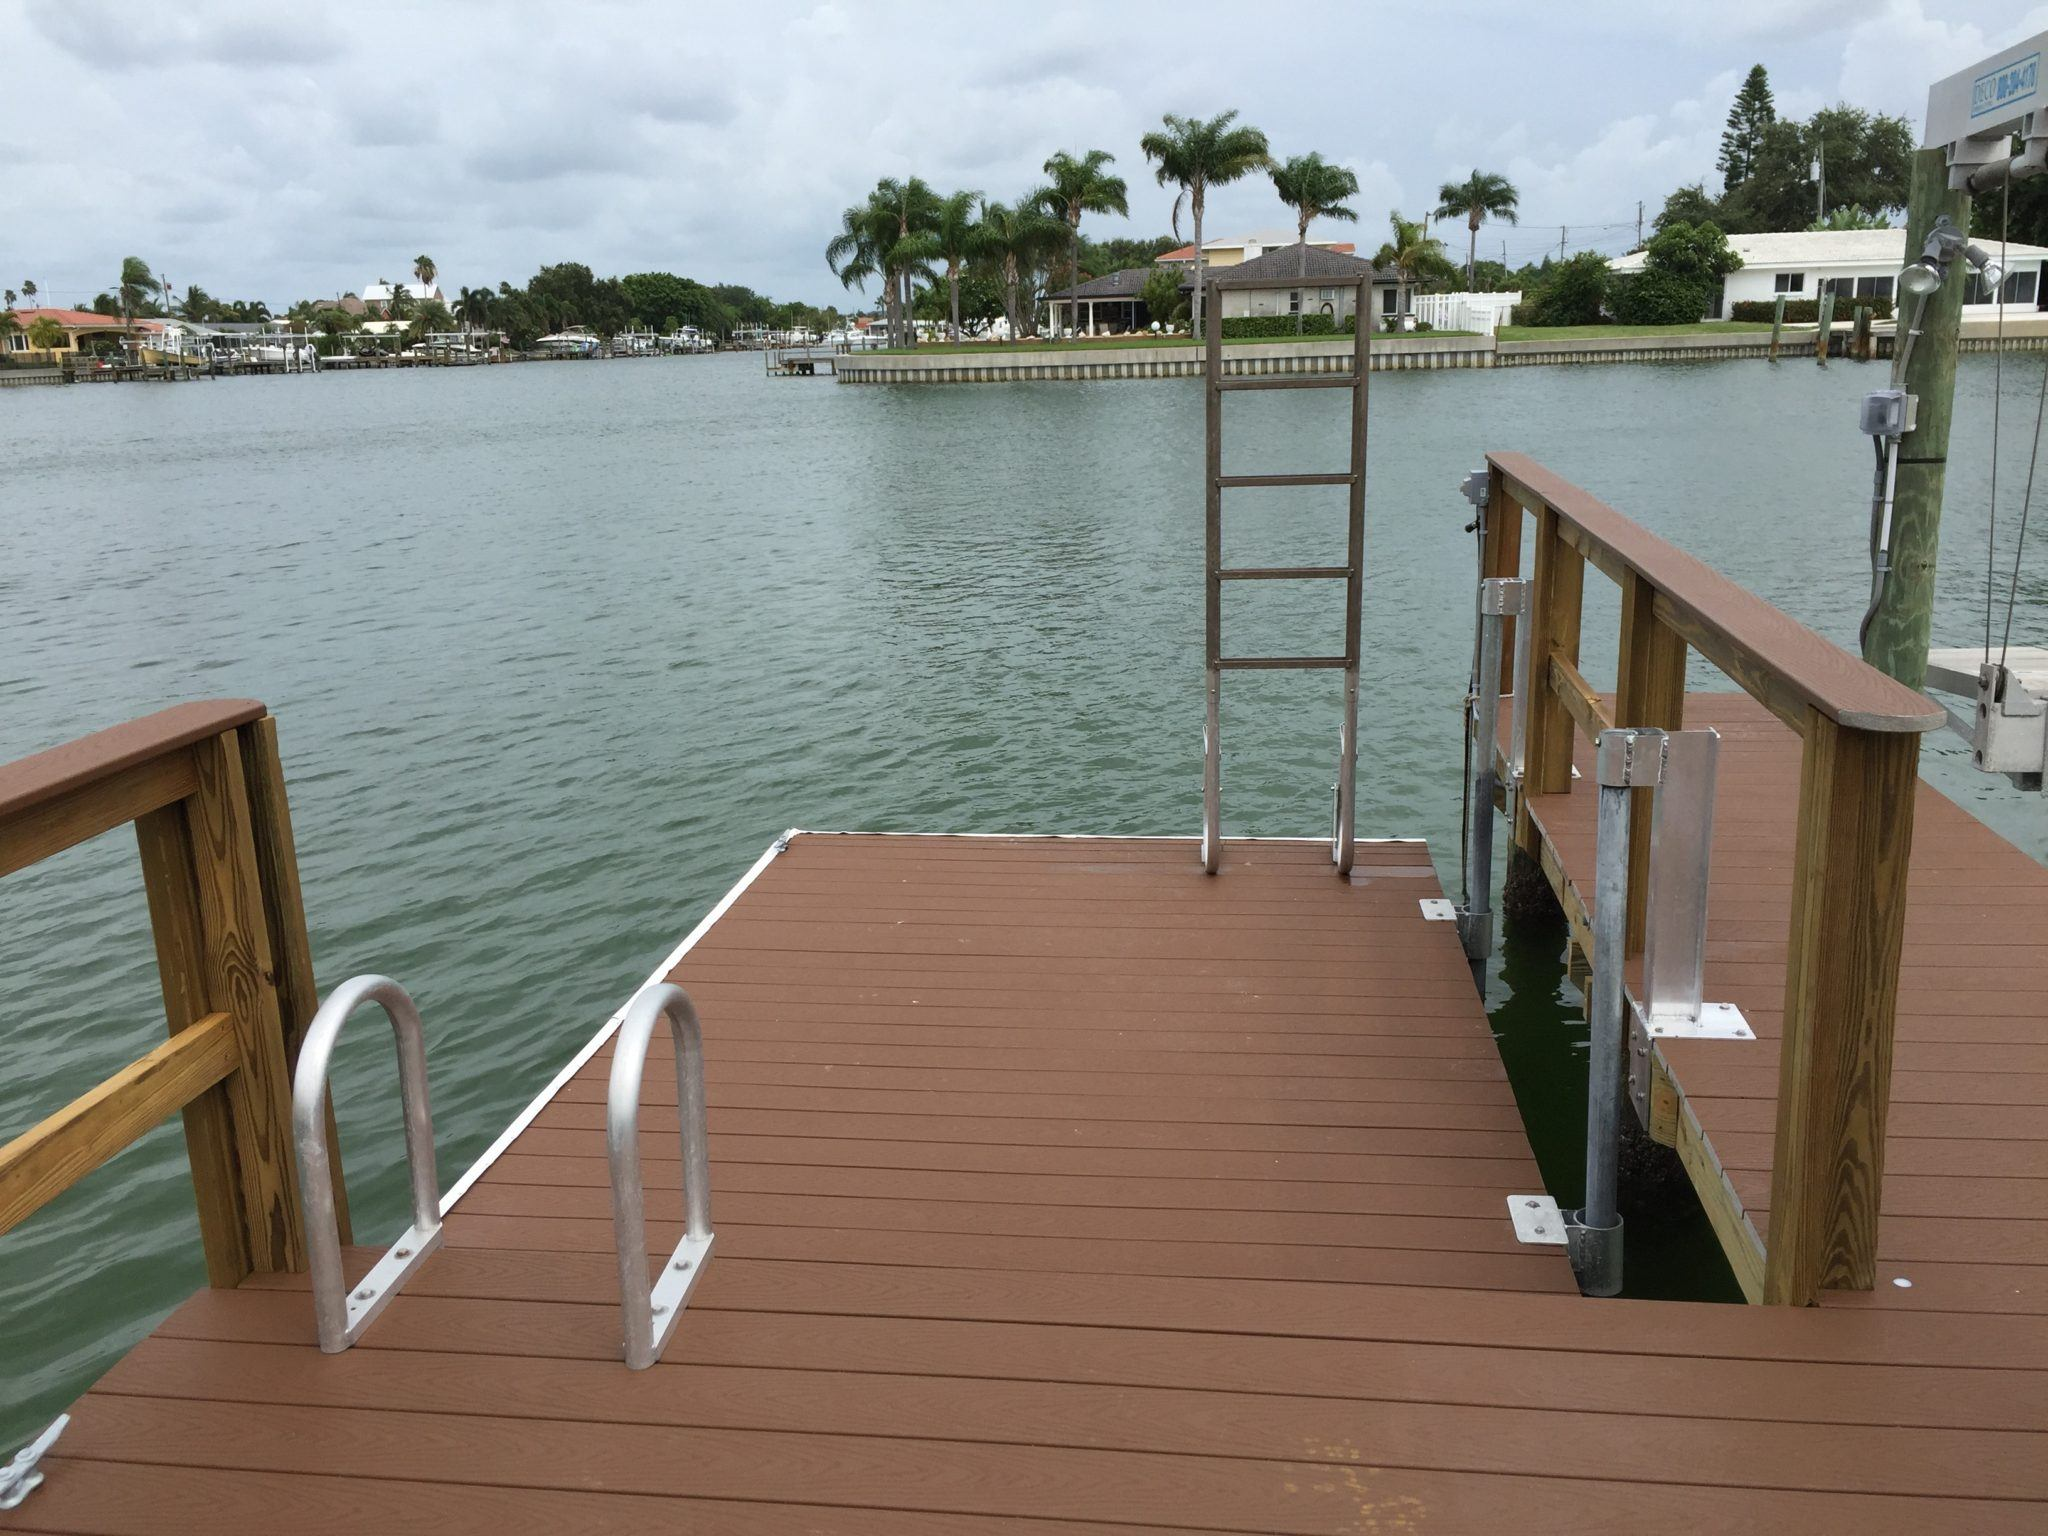 A new Trex floating dock attached to stationary dock with pipe slides and an aluminum ladder